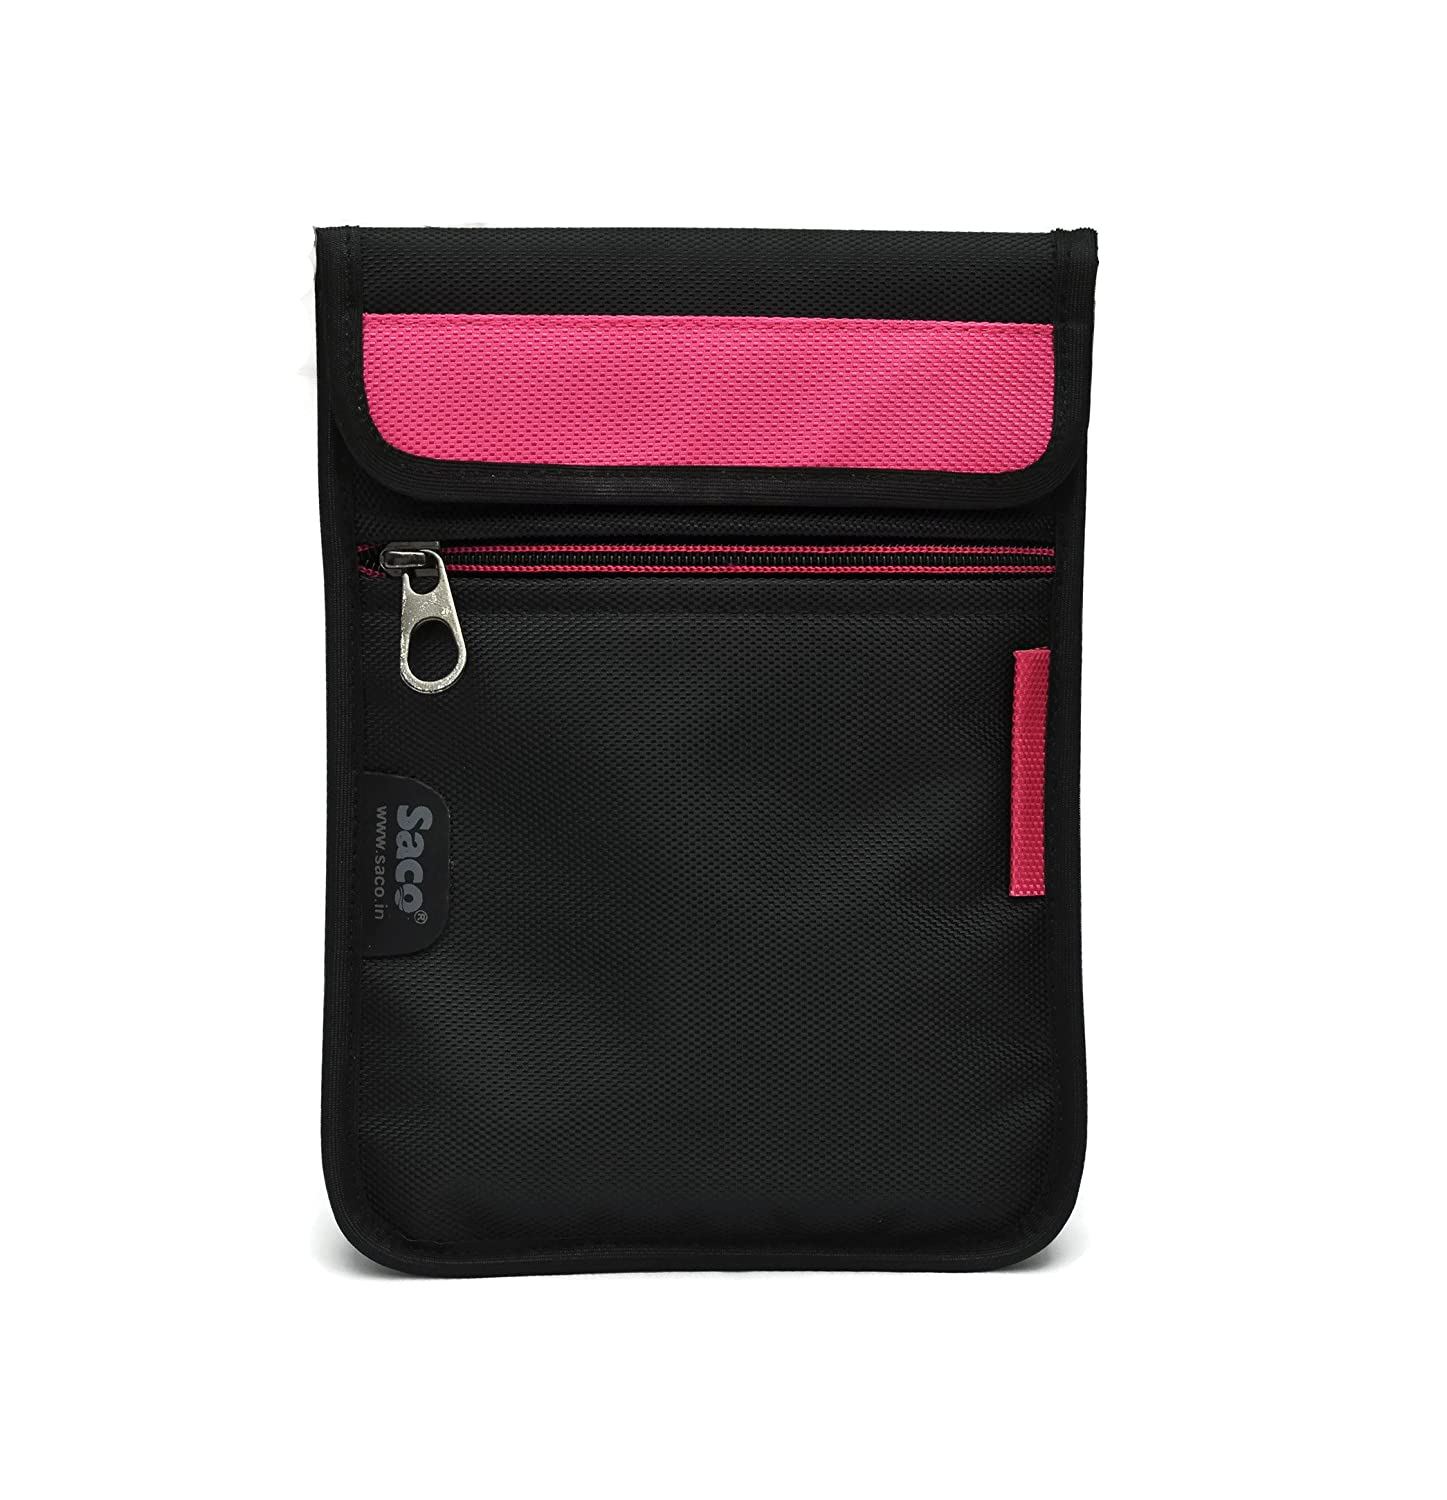 Saco Durable Pouch Soft Sleeve Carrying Bag Case with Shoulder Strap Zipper for Samsung Galaxy Tab A SM T355YZAA Tablet 8 inch   Pink